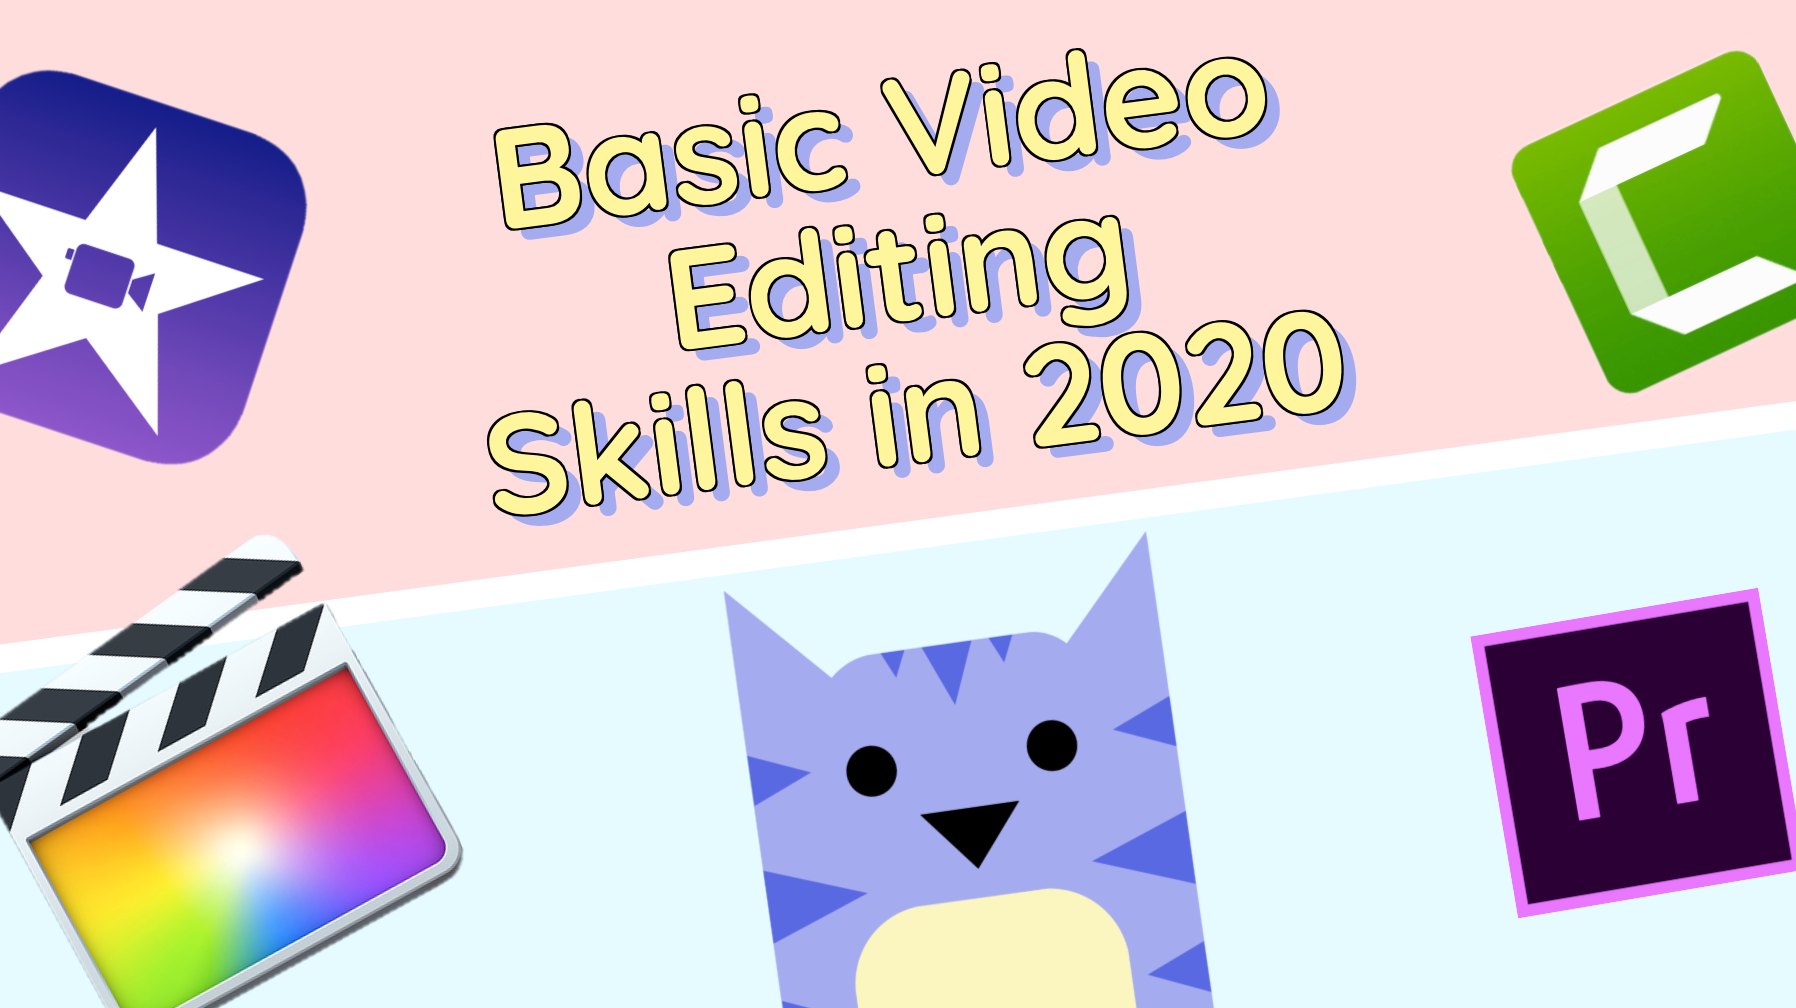 What are Basic Video Editing Skills in 2020?